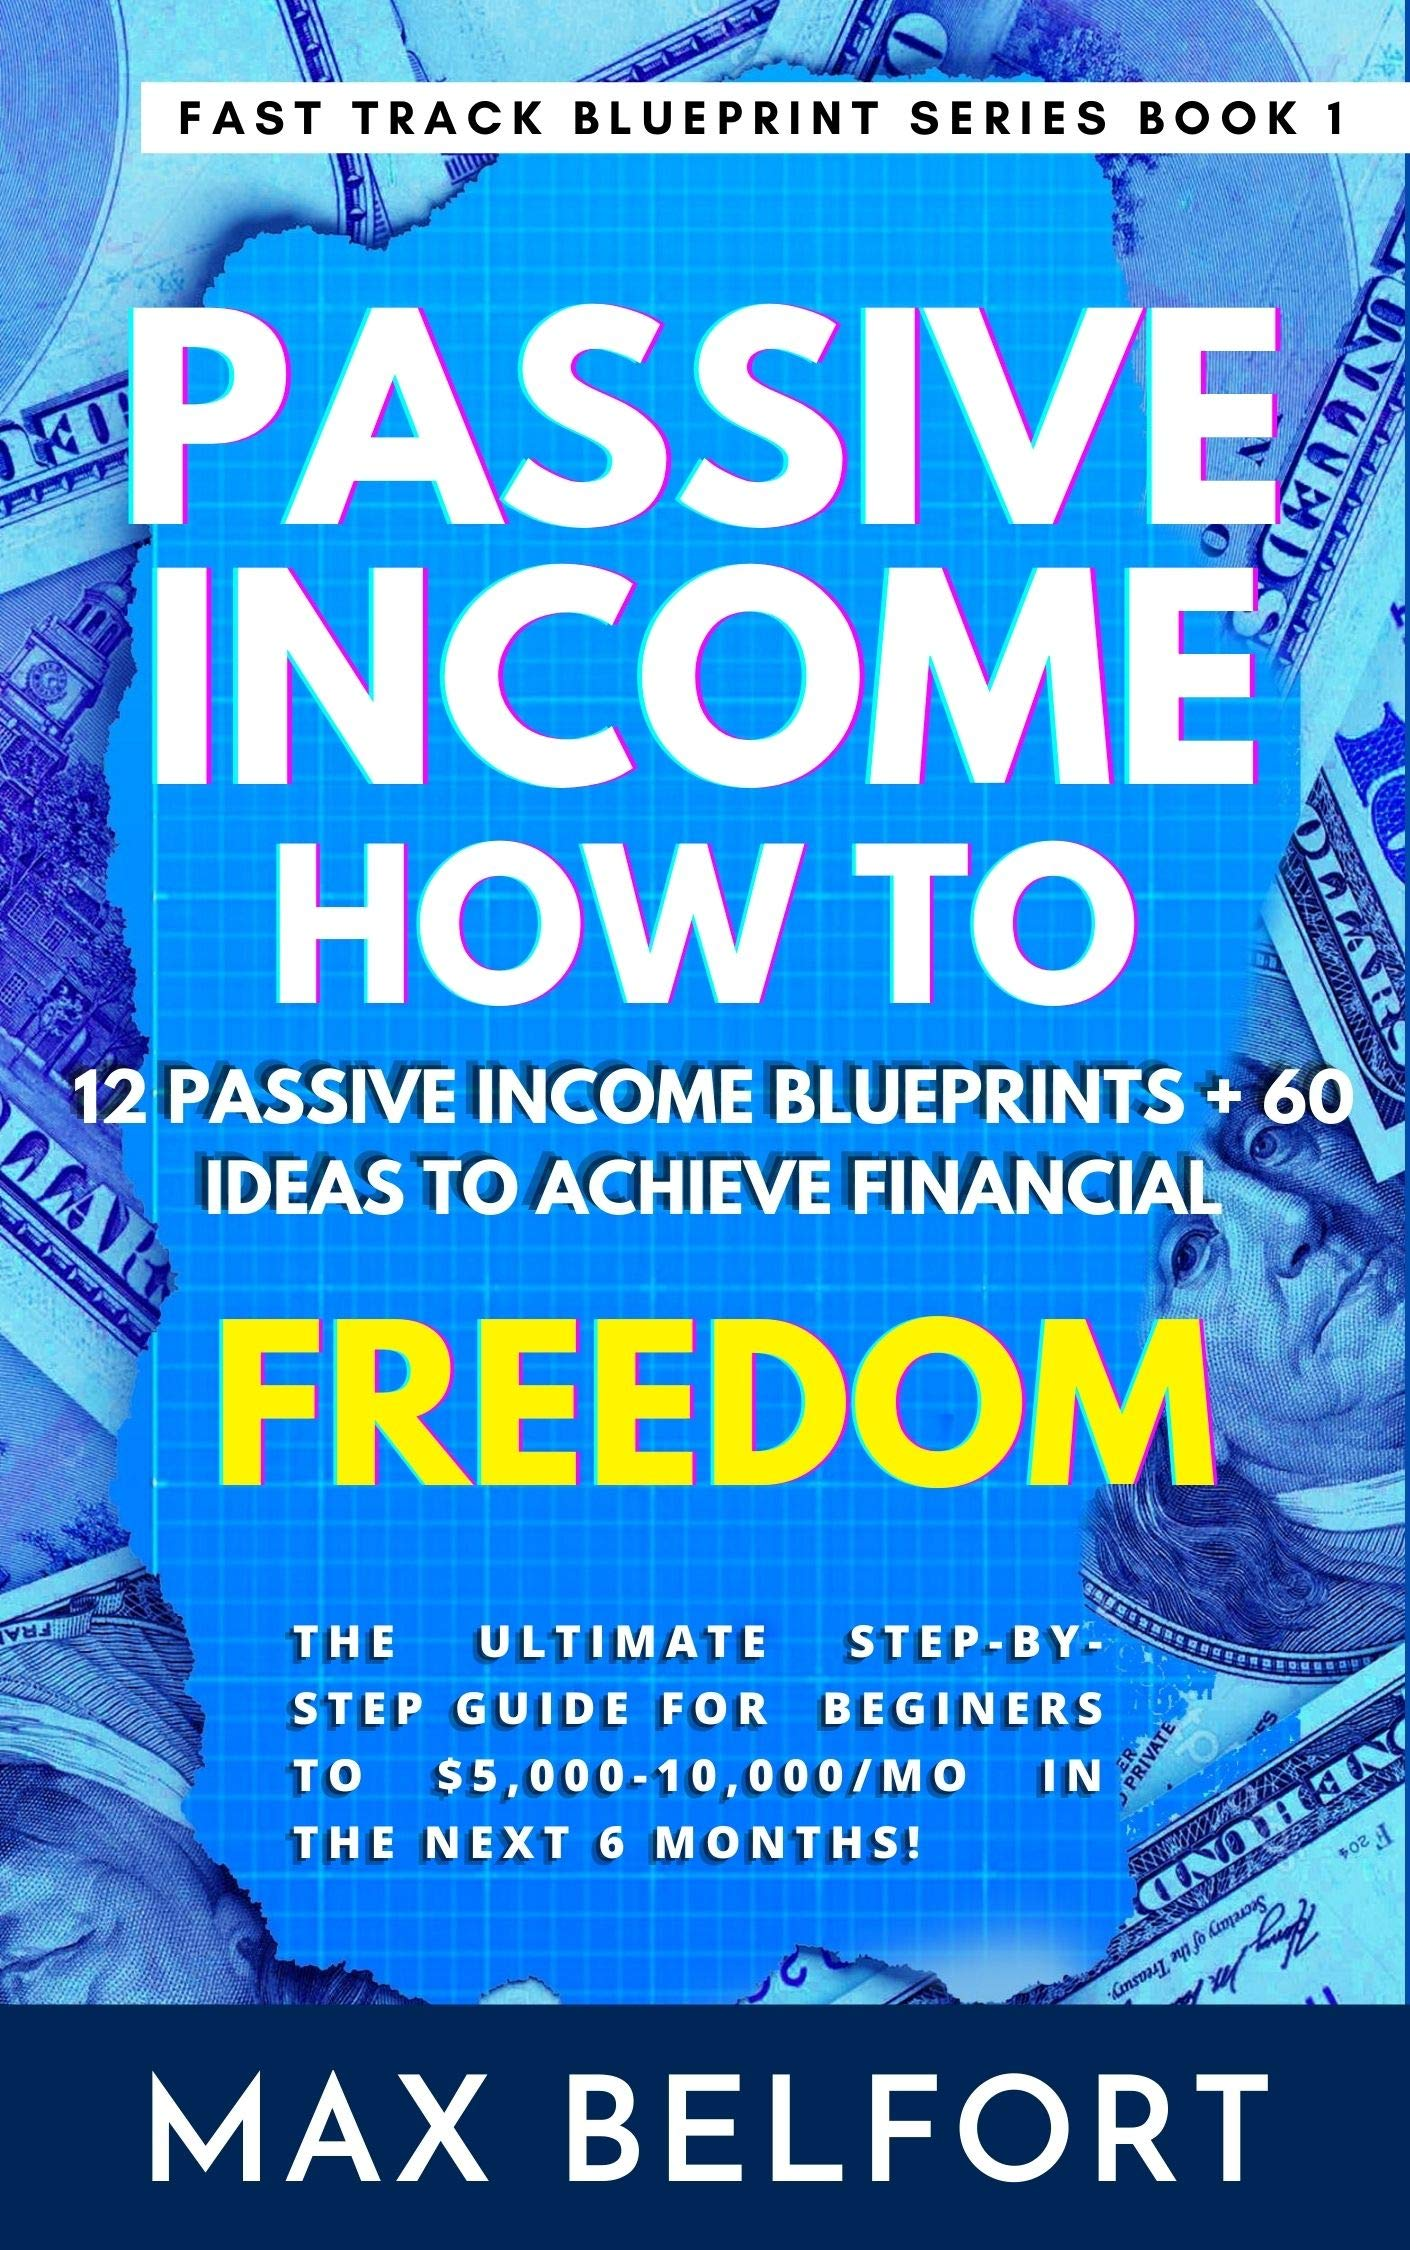 Passive Income How To: 12 Passive Income Blueprints + 60 Ideas To Achieve Financial Freedom: The Ultimate Step-by-Step guide for Beginners to $5,000-10,000/mo ... 6 Months! (Fast Track Blueprint Book 1)